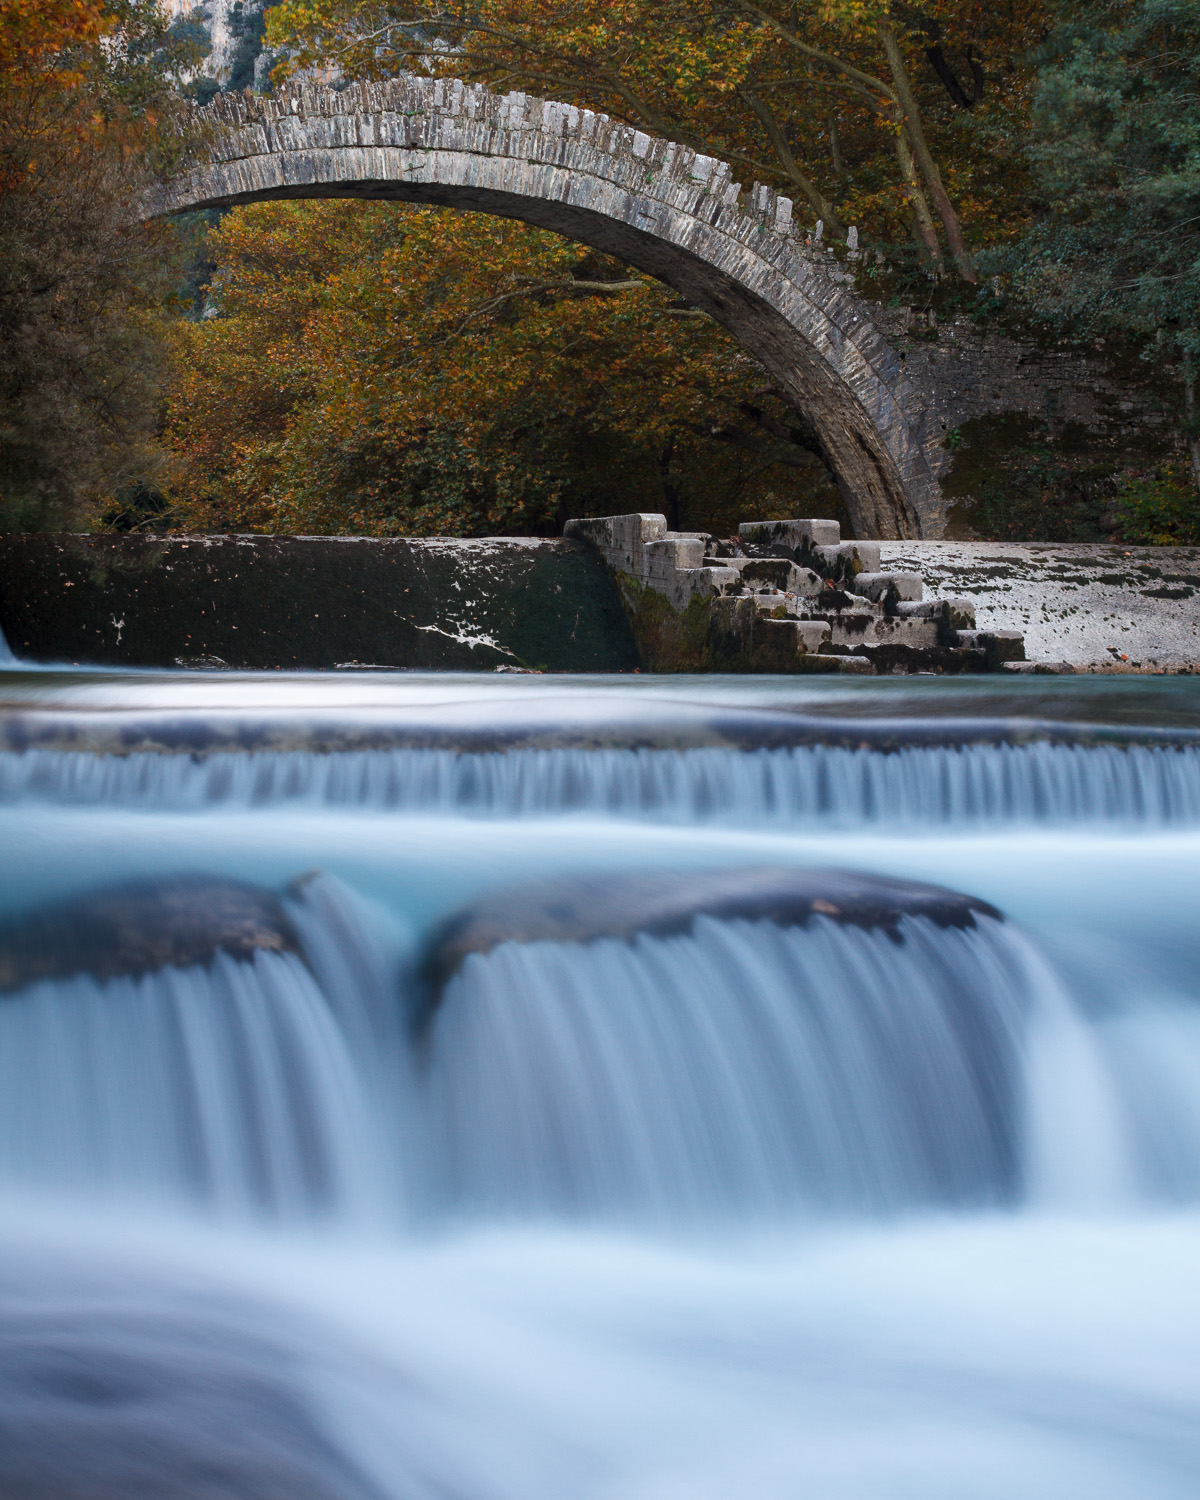 Arches of water and stone